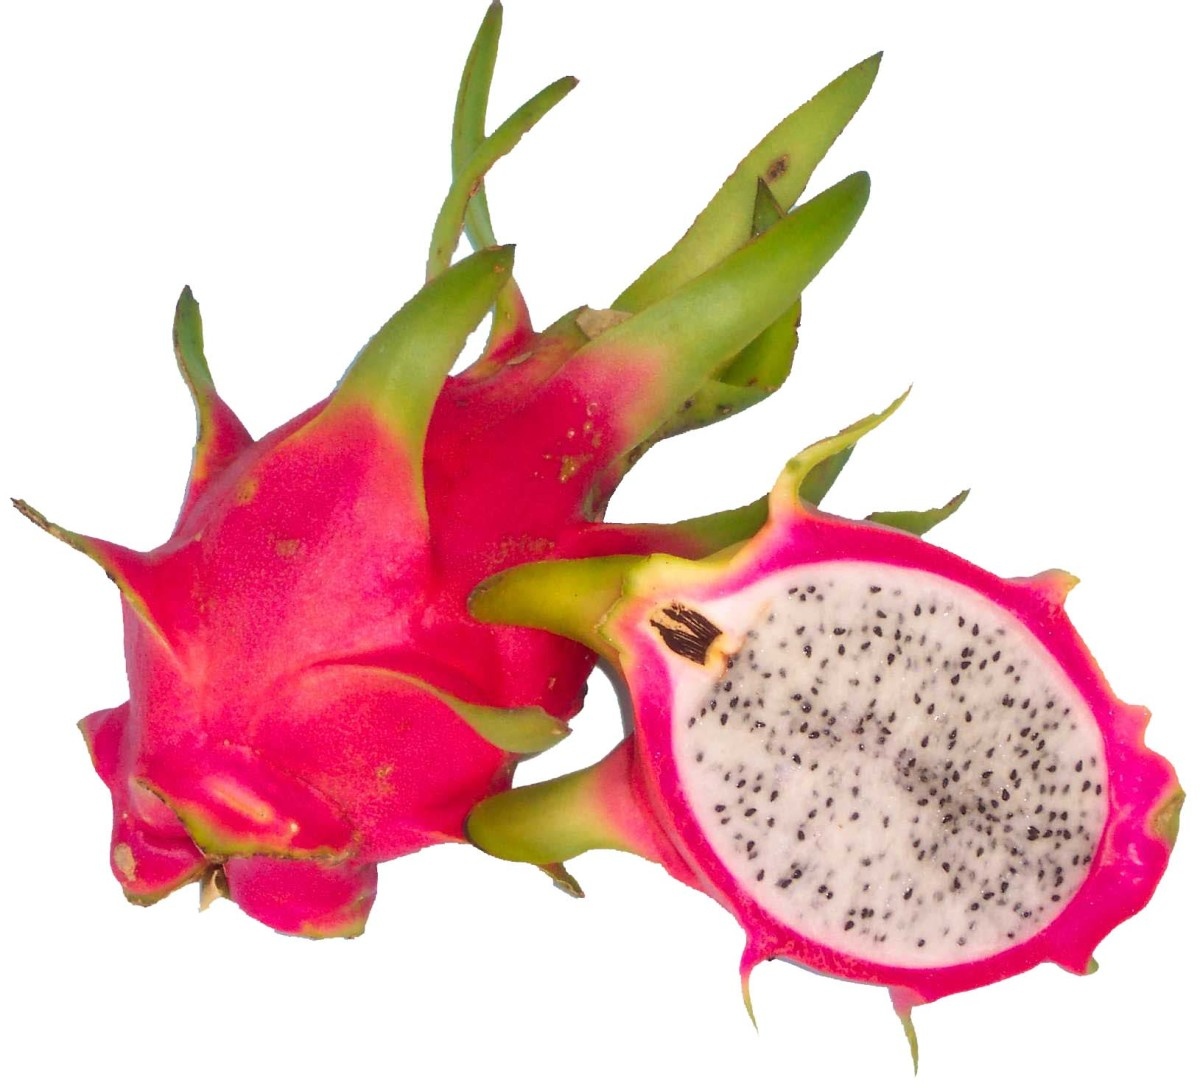 A pitaya or dragon fruit